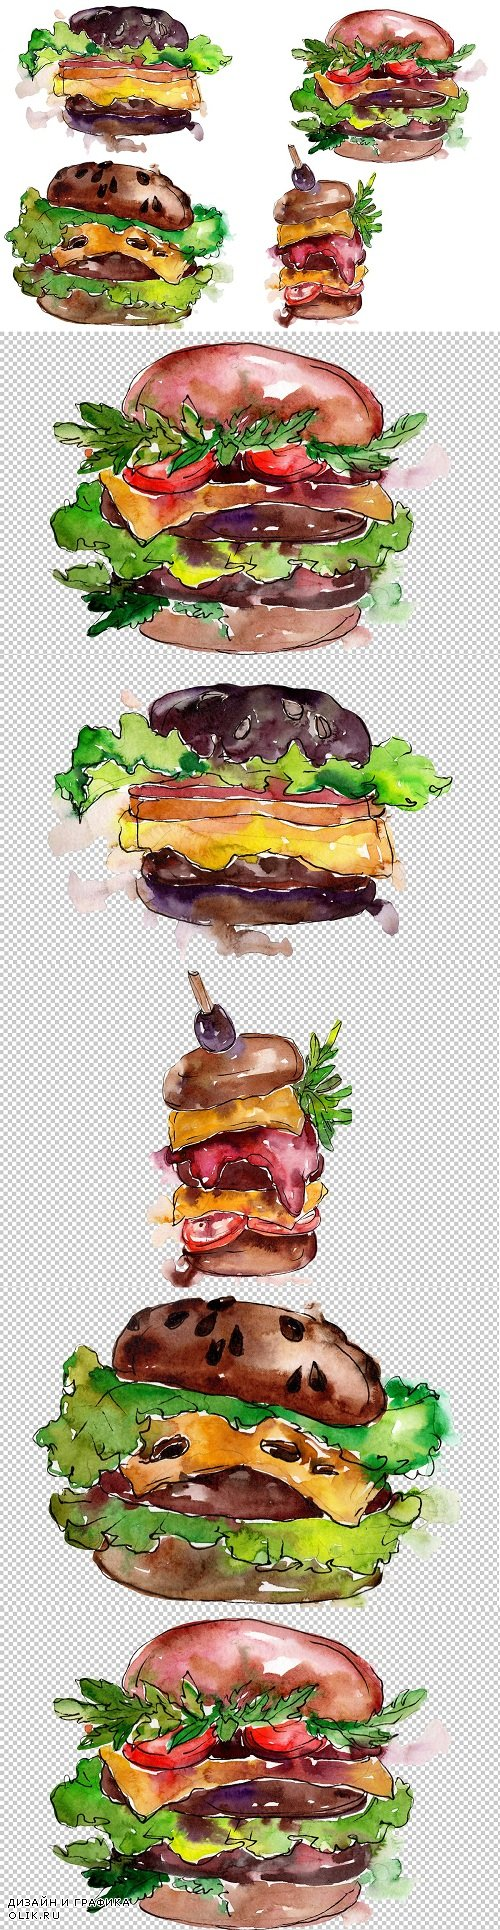 Hamburger Watercolor png - 3456769